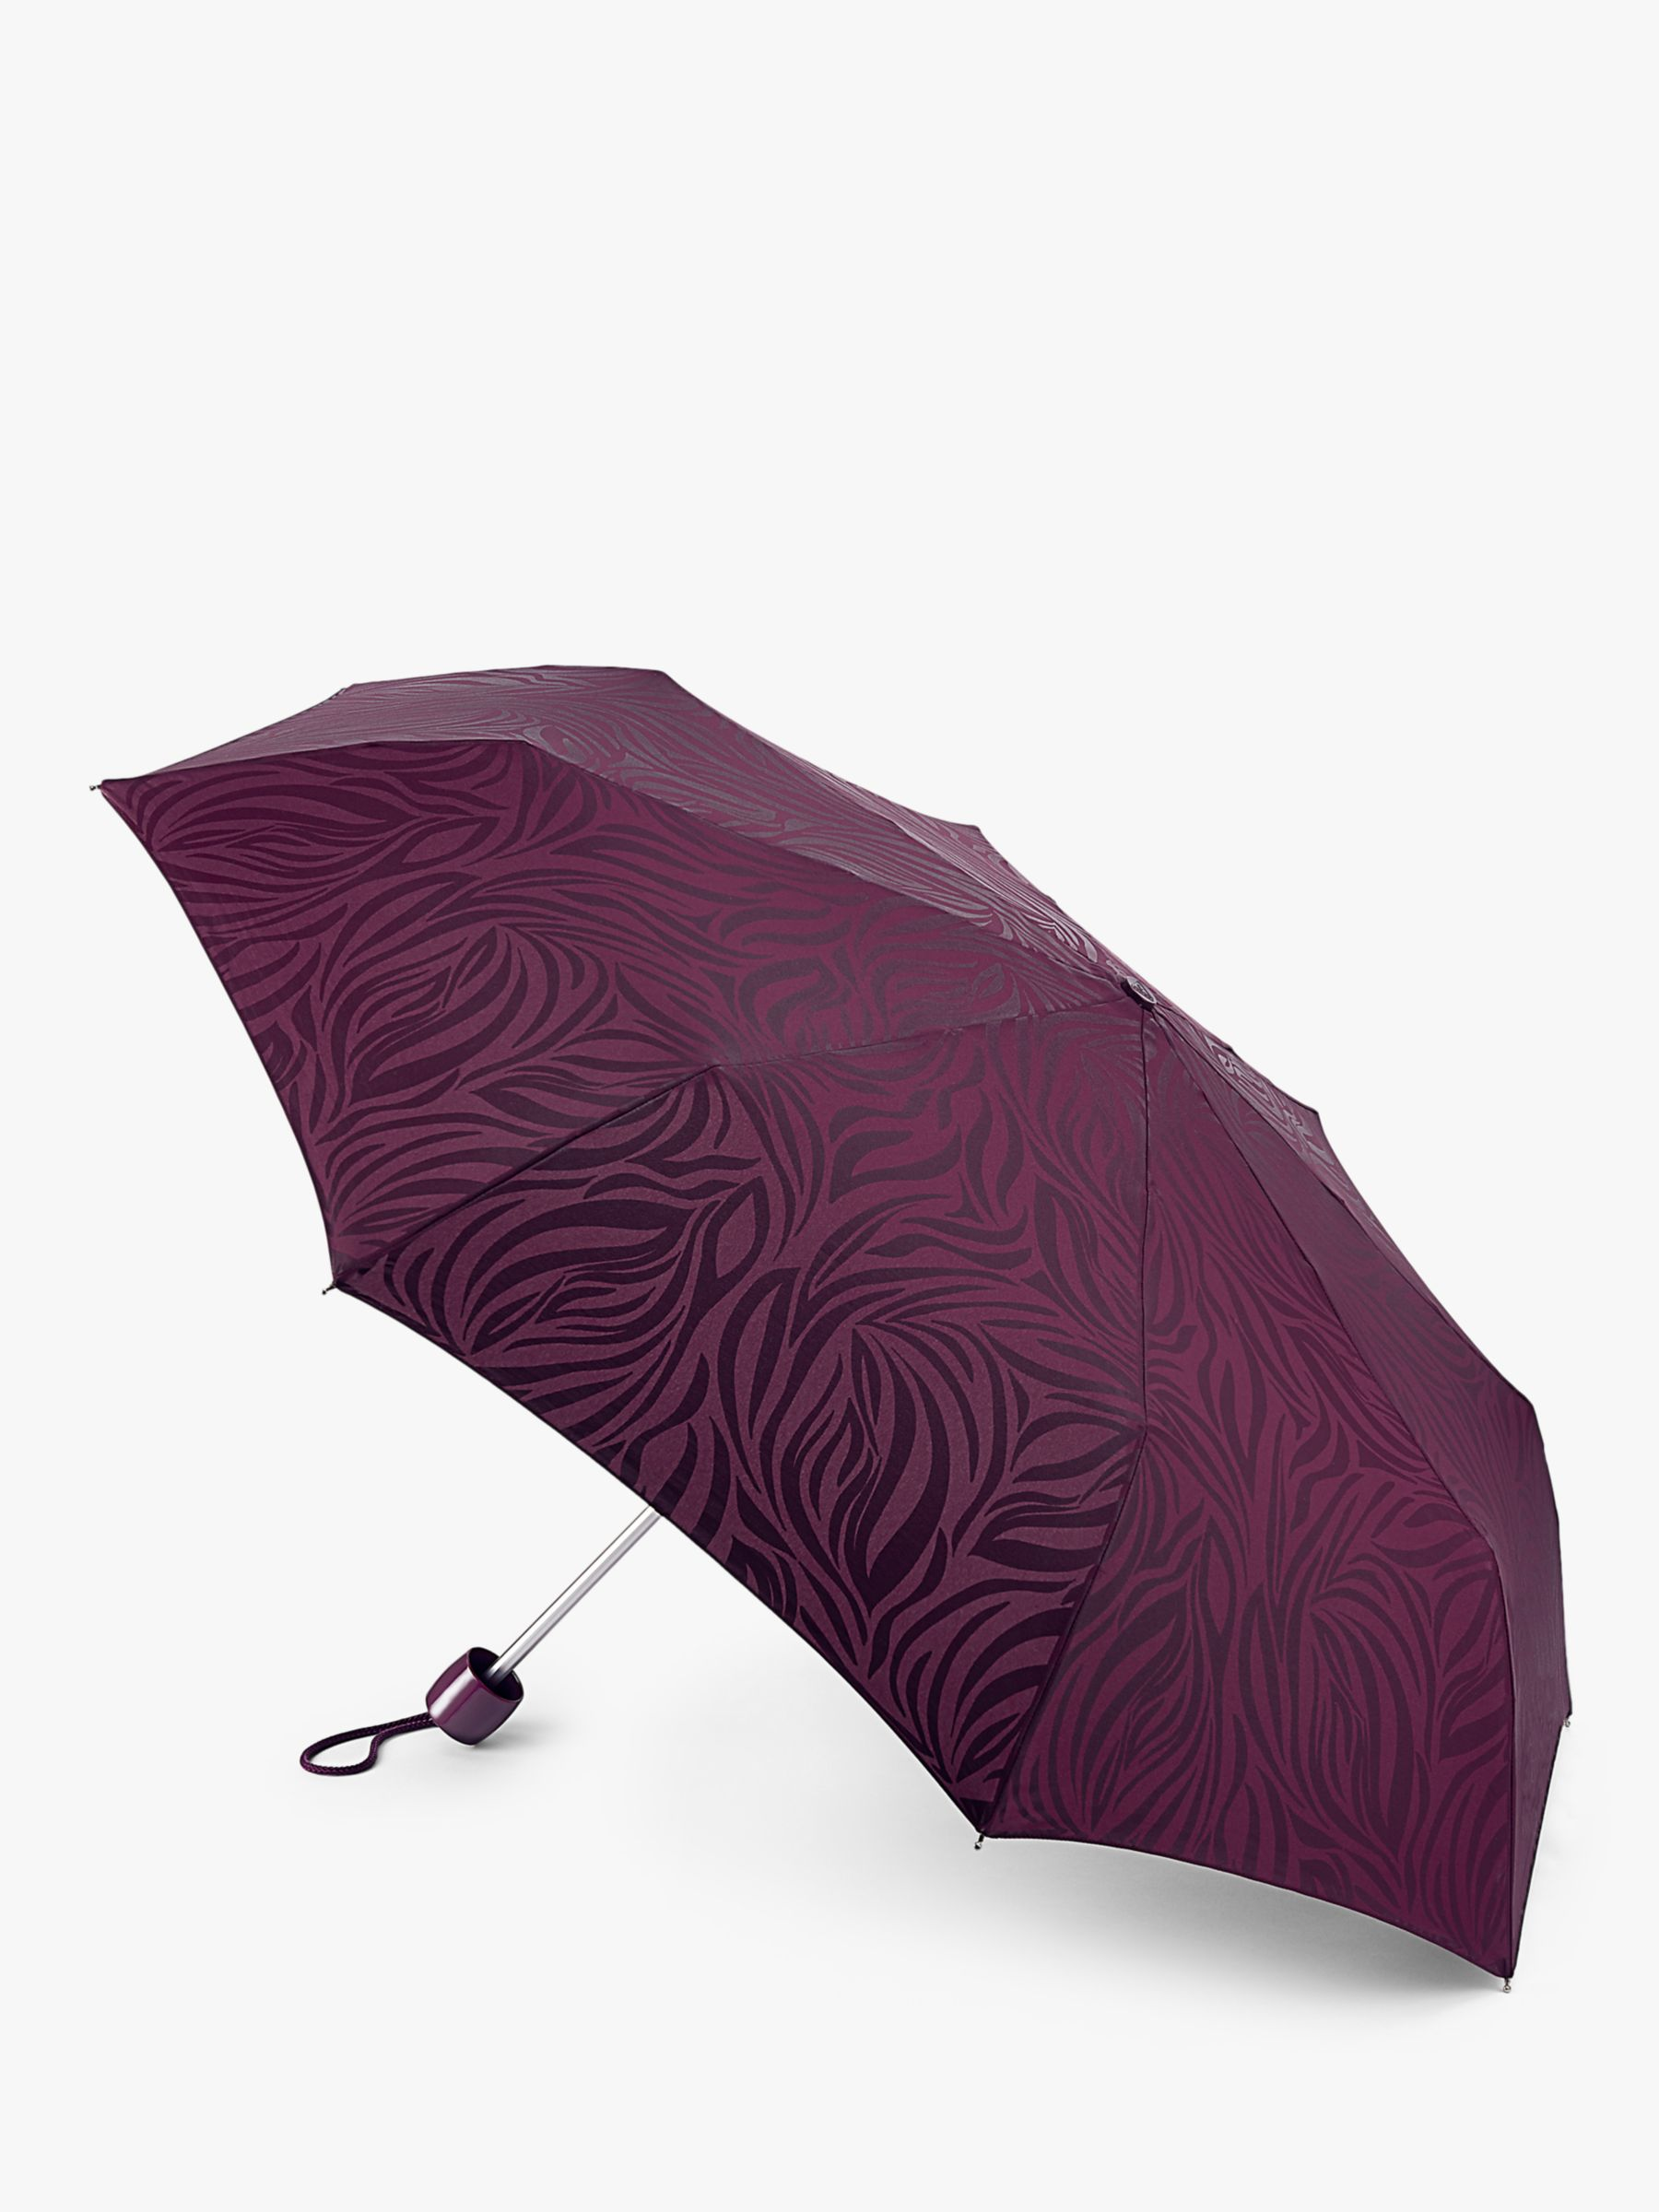 Fulton Fulton Minilite Zebra Print Folding Umbrella, Purple